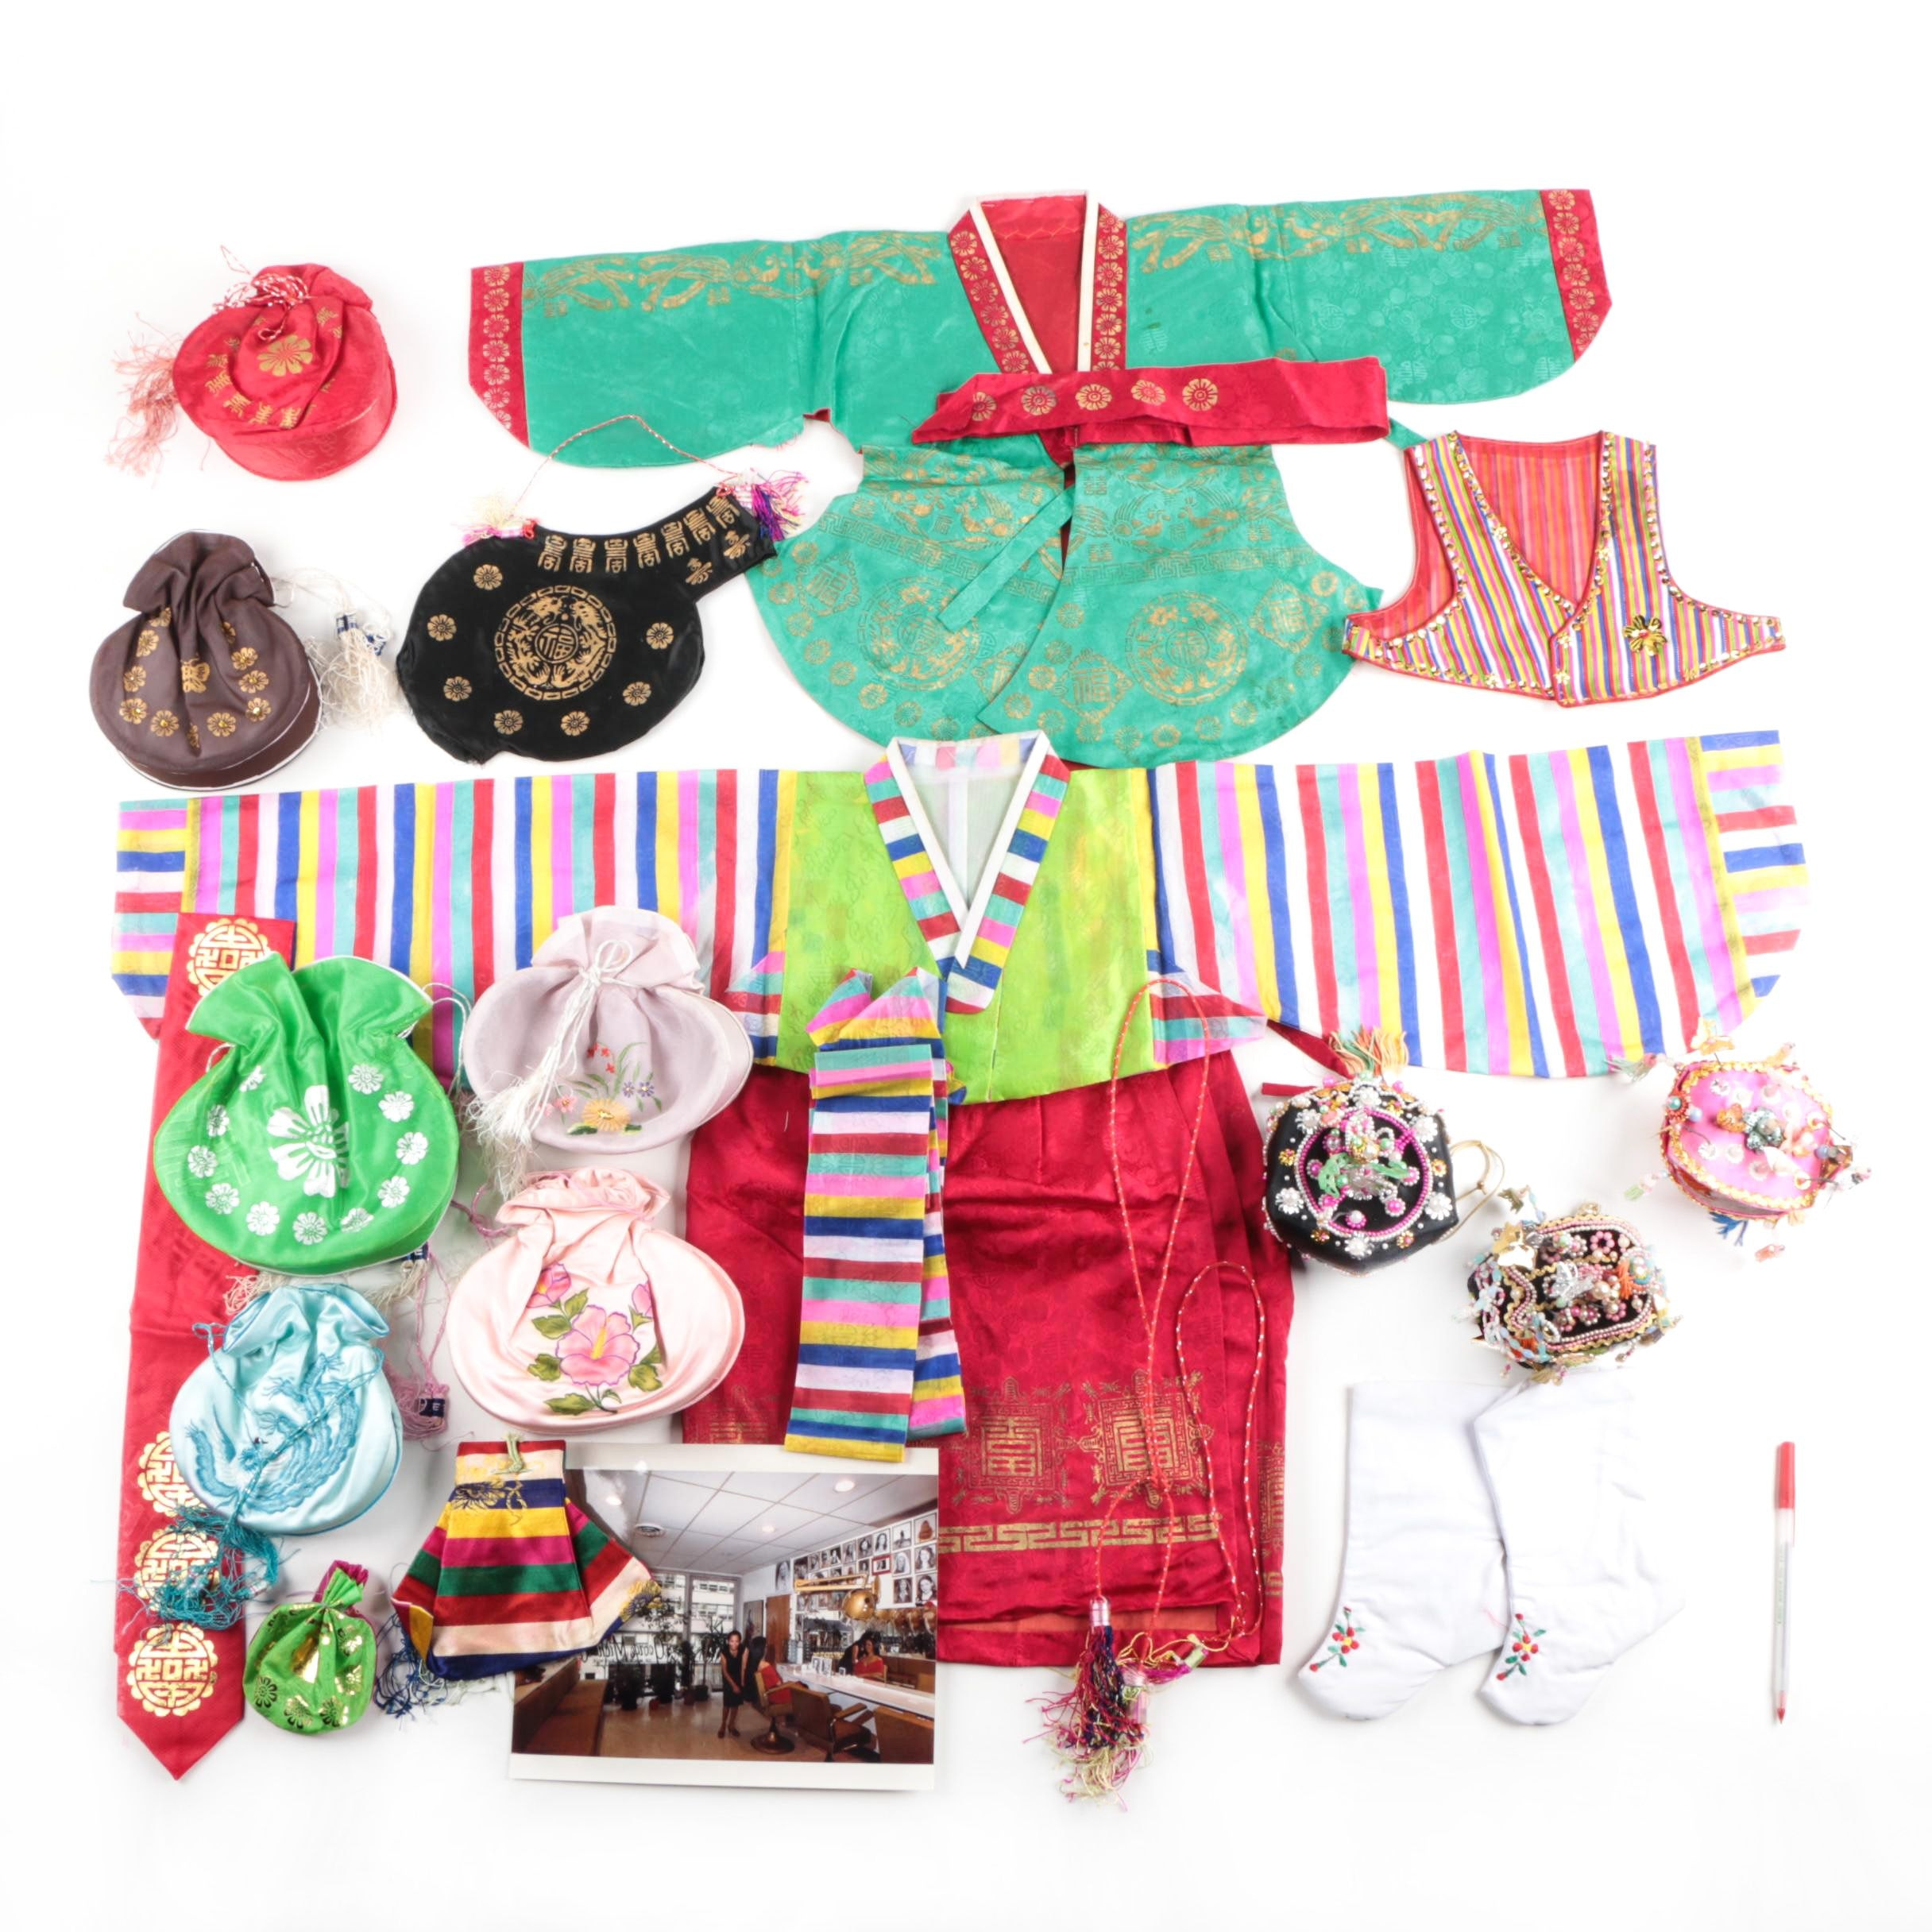 East Asian Clothing and Accessories